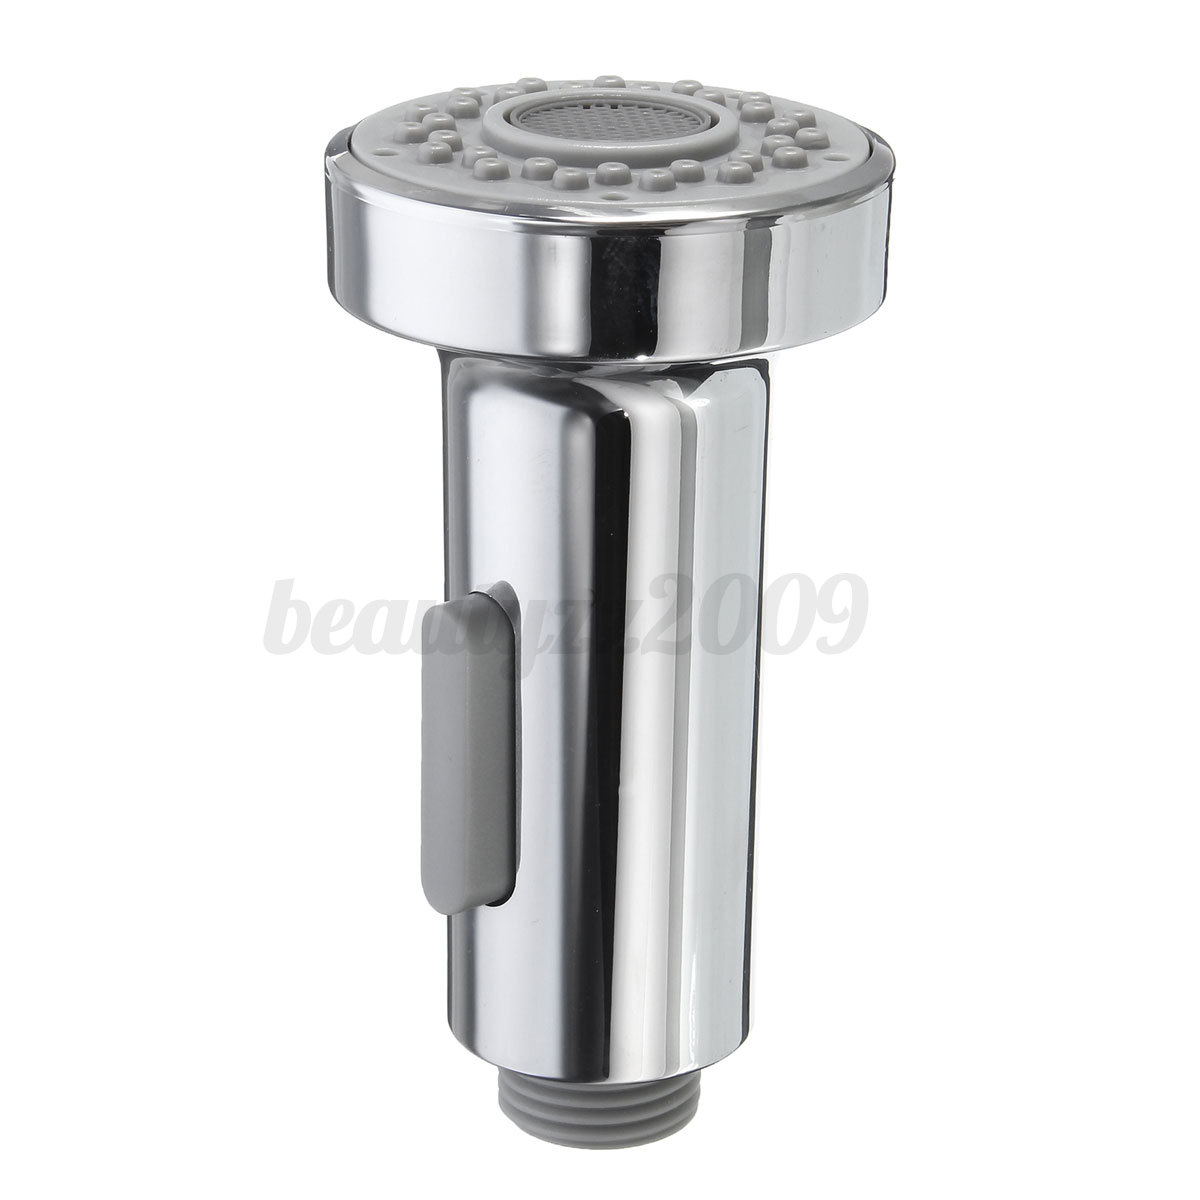 spray head kitchen faucet composite cabinets spare replacement mixer tap pull out shower